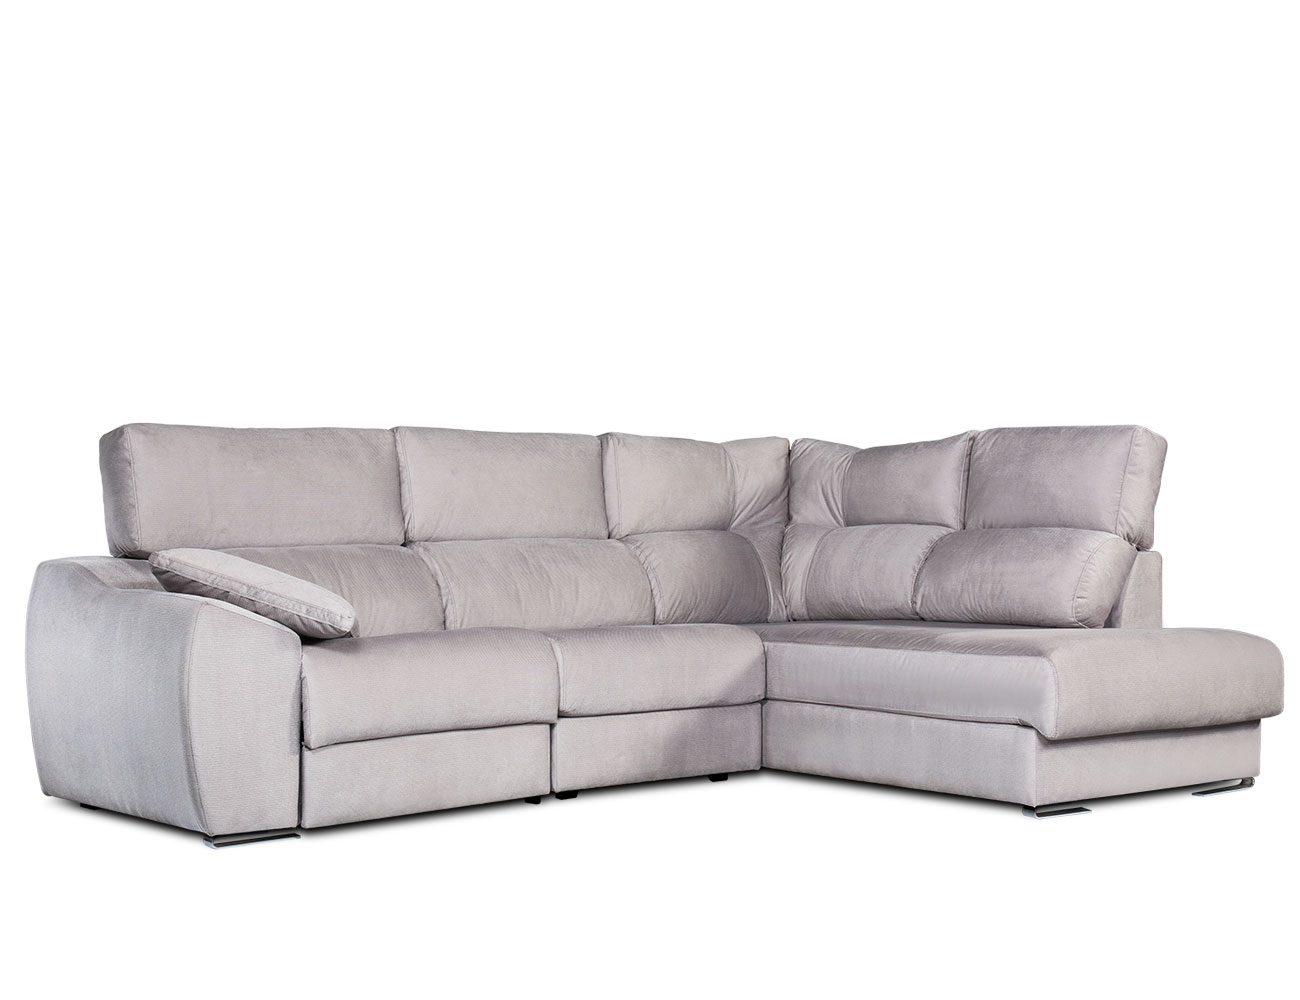 Sofa chaiselongue rincon electrico1